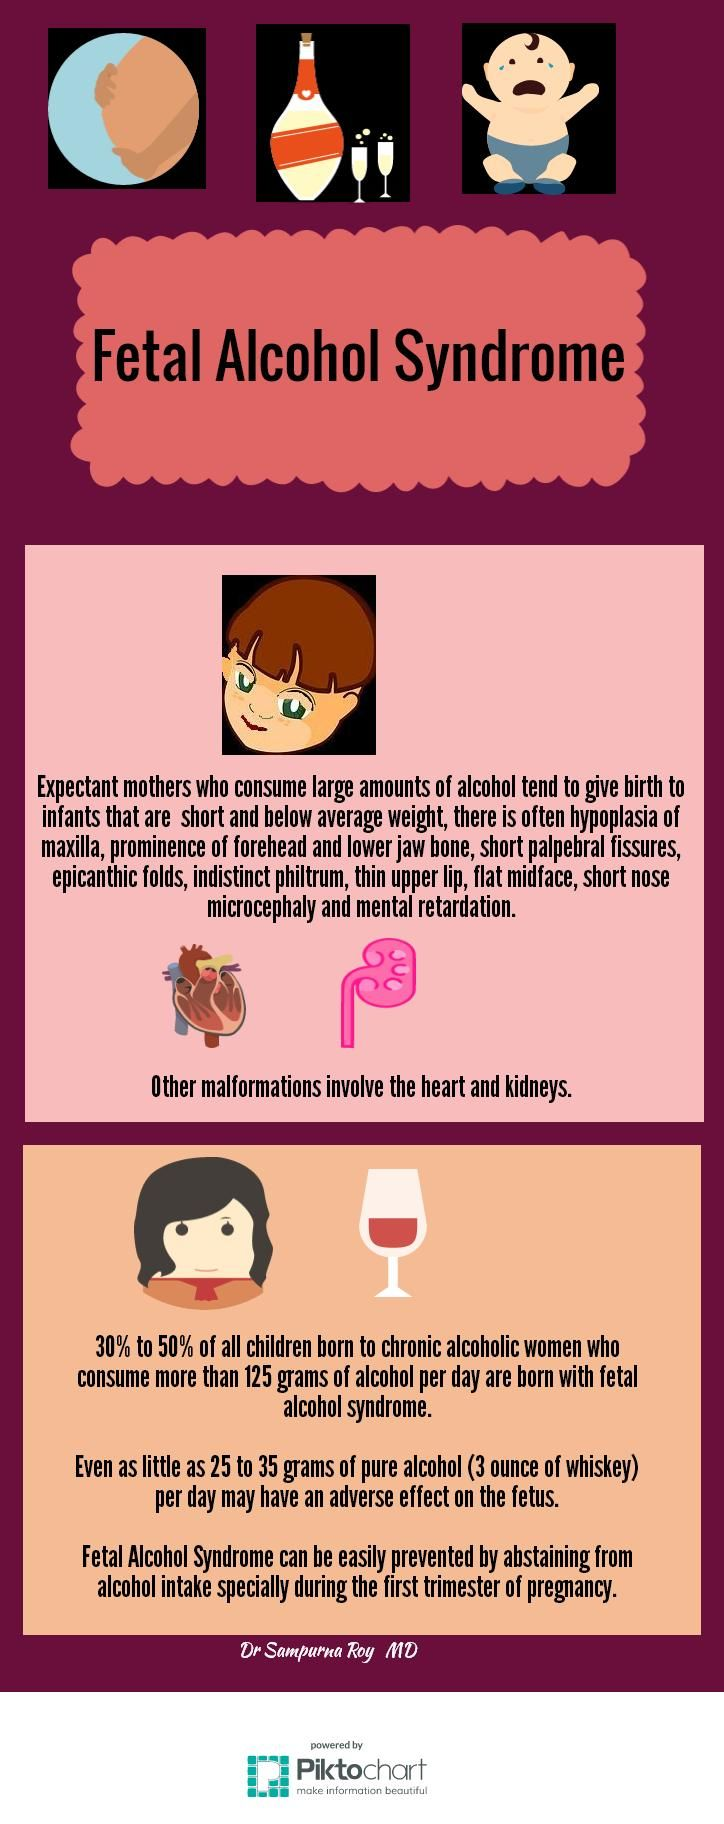 fetal alcohol syndrome legislation Fetal alcohol syndrome results from alcohol exposure during the mother's pregnancy, causing irreversible brain damage and growth problems in the child.